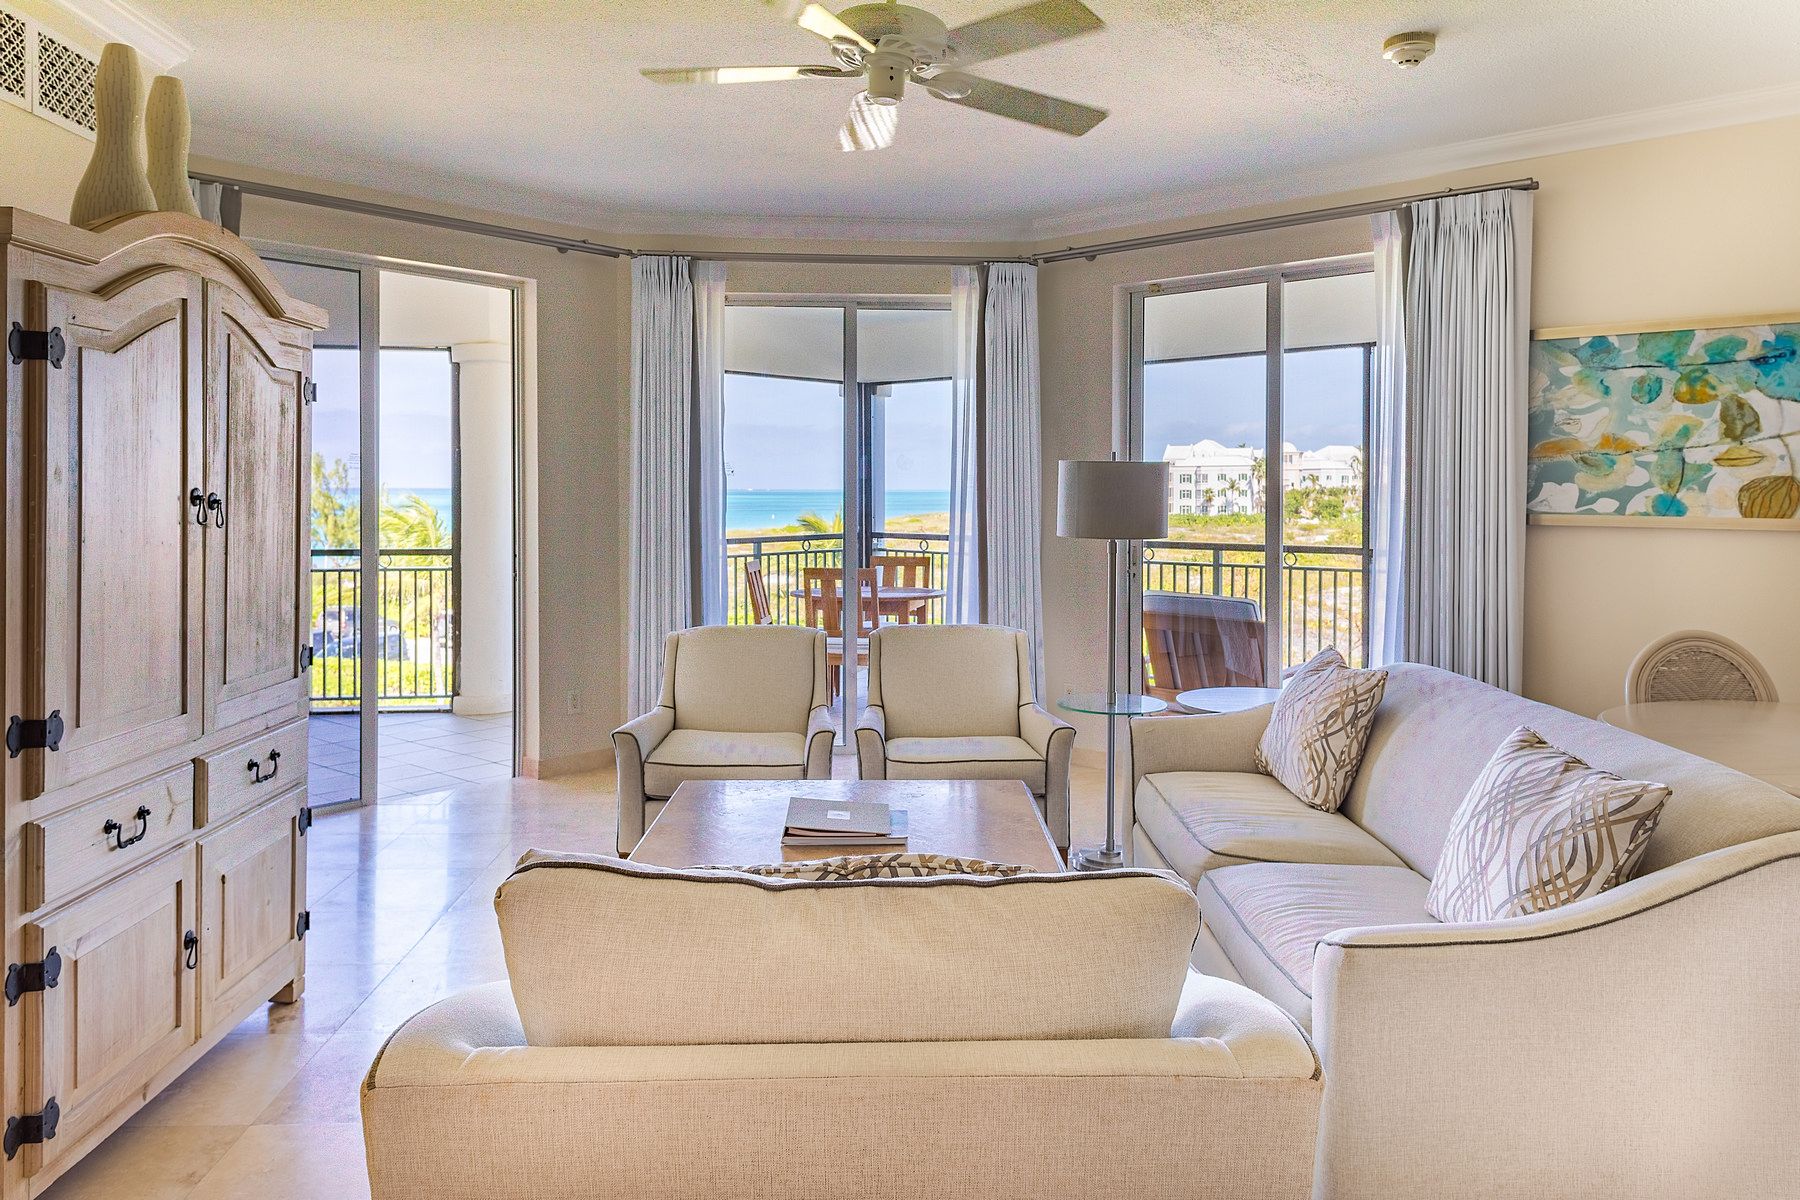 Condominium for Sale at The Sands at Grace Bay - Penthouse Suite 3309.10 The Sands On Grace Bay, Grace Bay, Turks And Caicos Islands